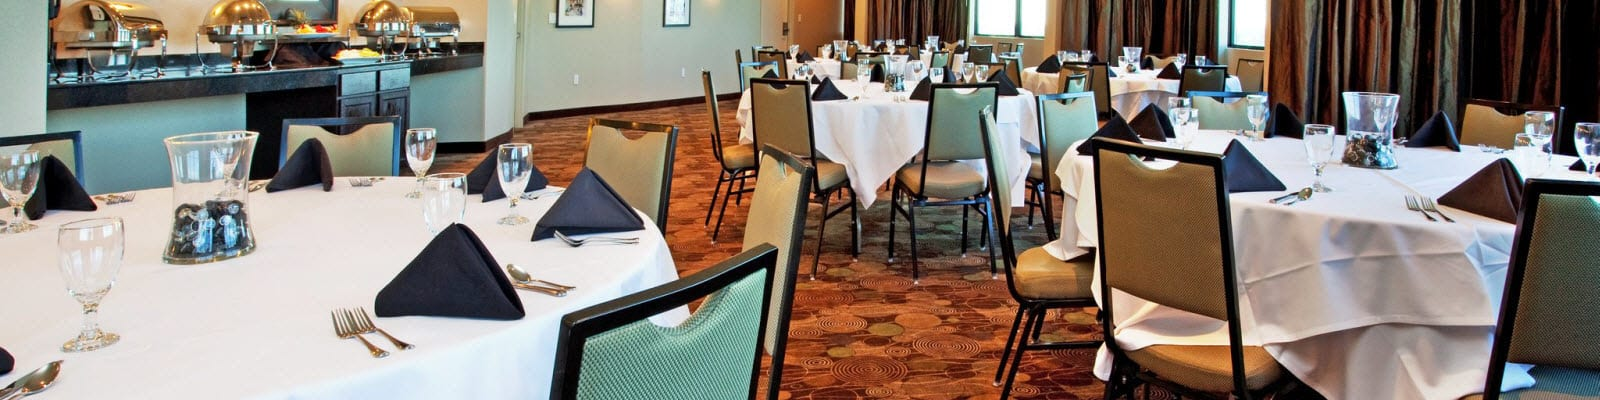 Banquet chairs in a hotel dining room